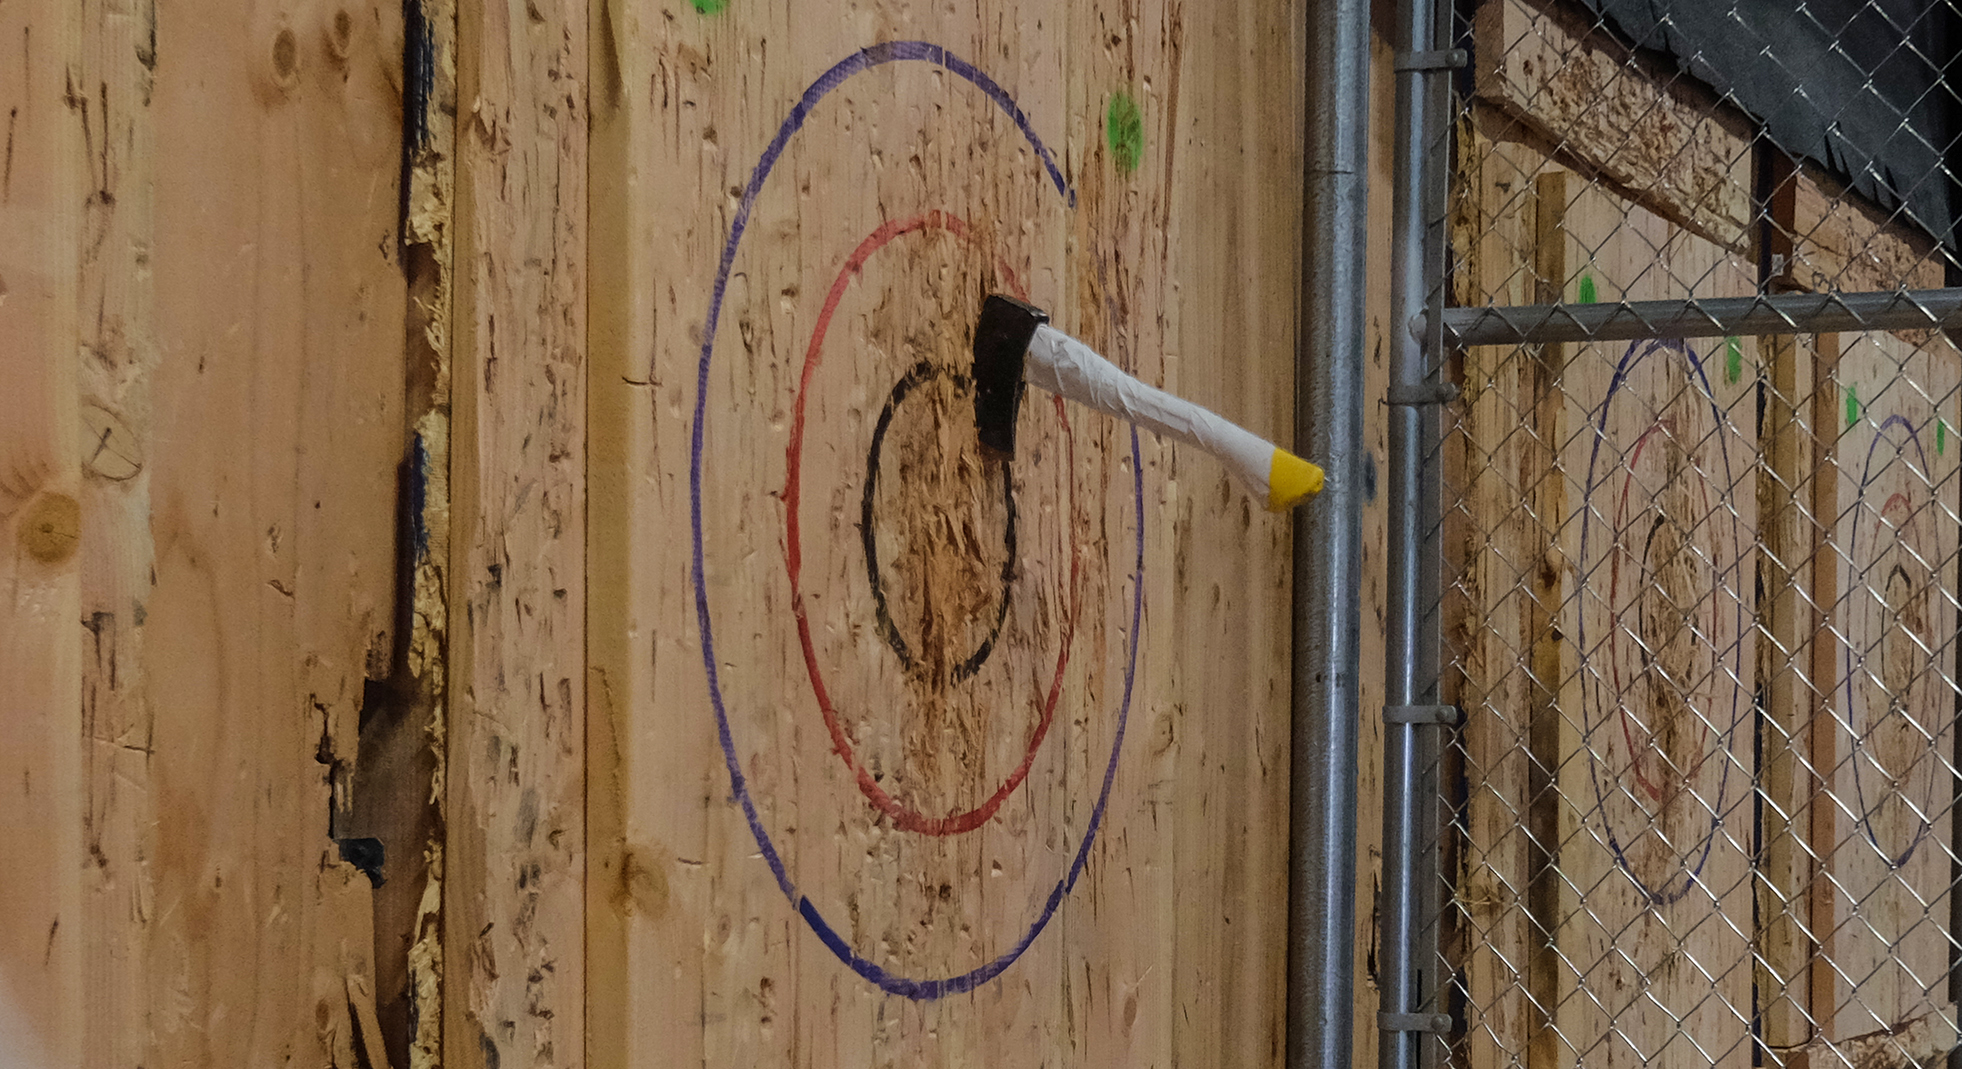 Axe throwing and pints: the new date night?